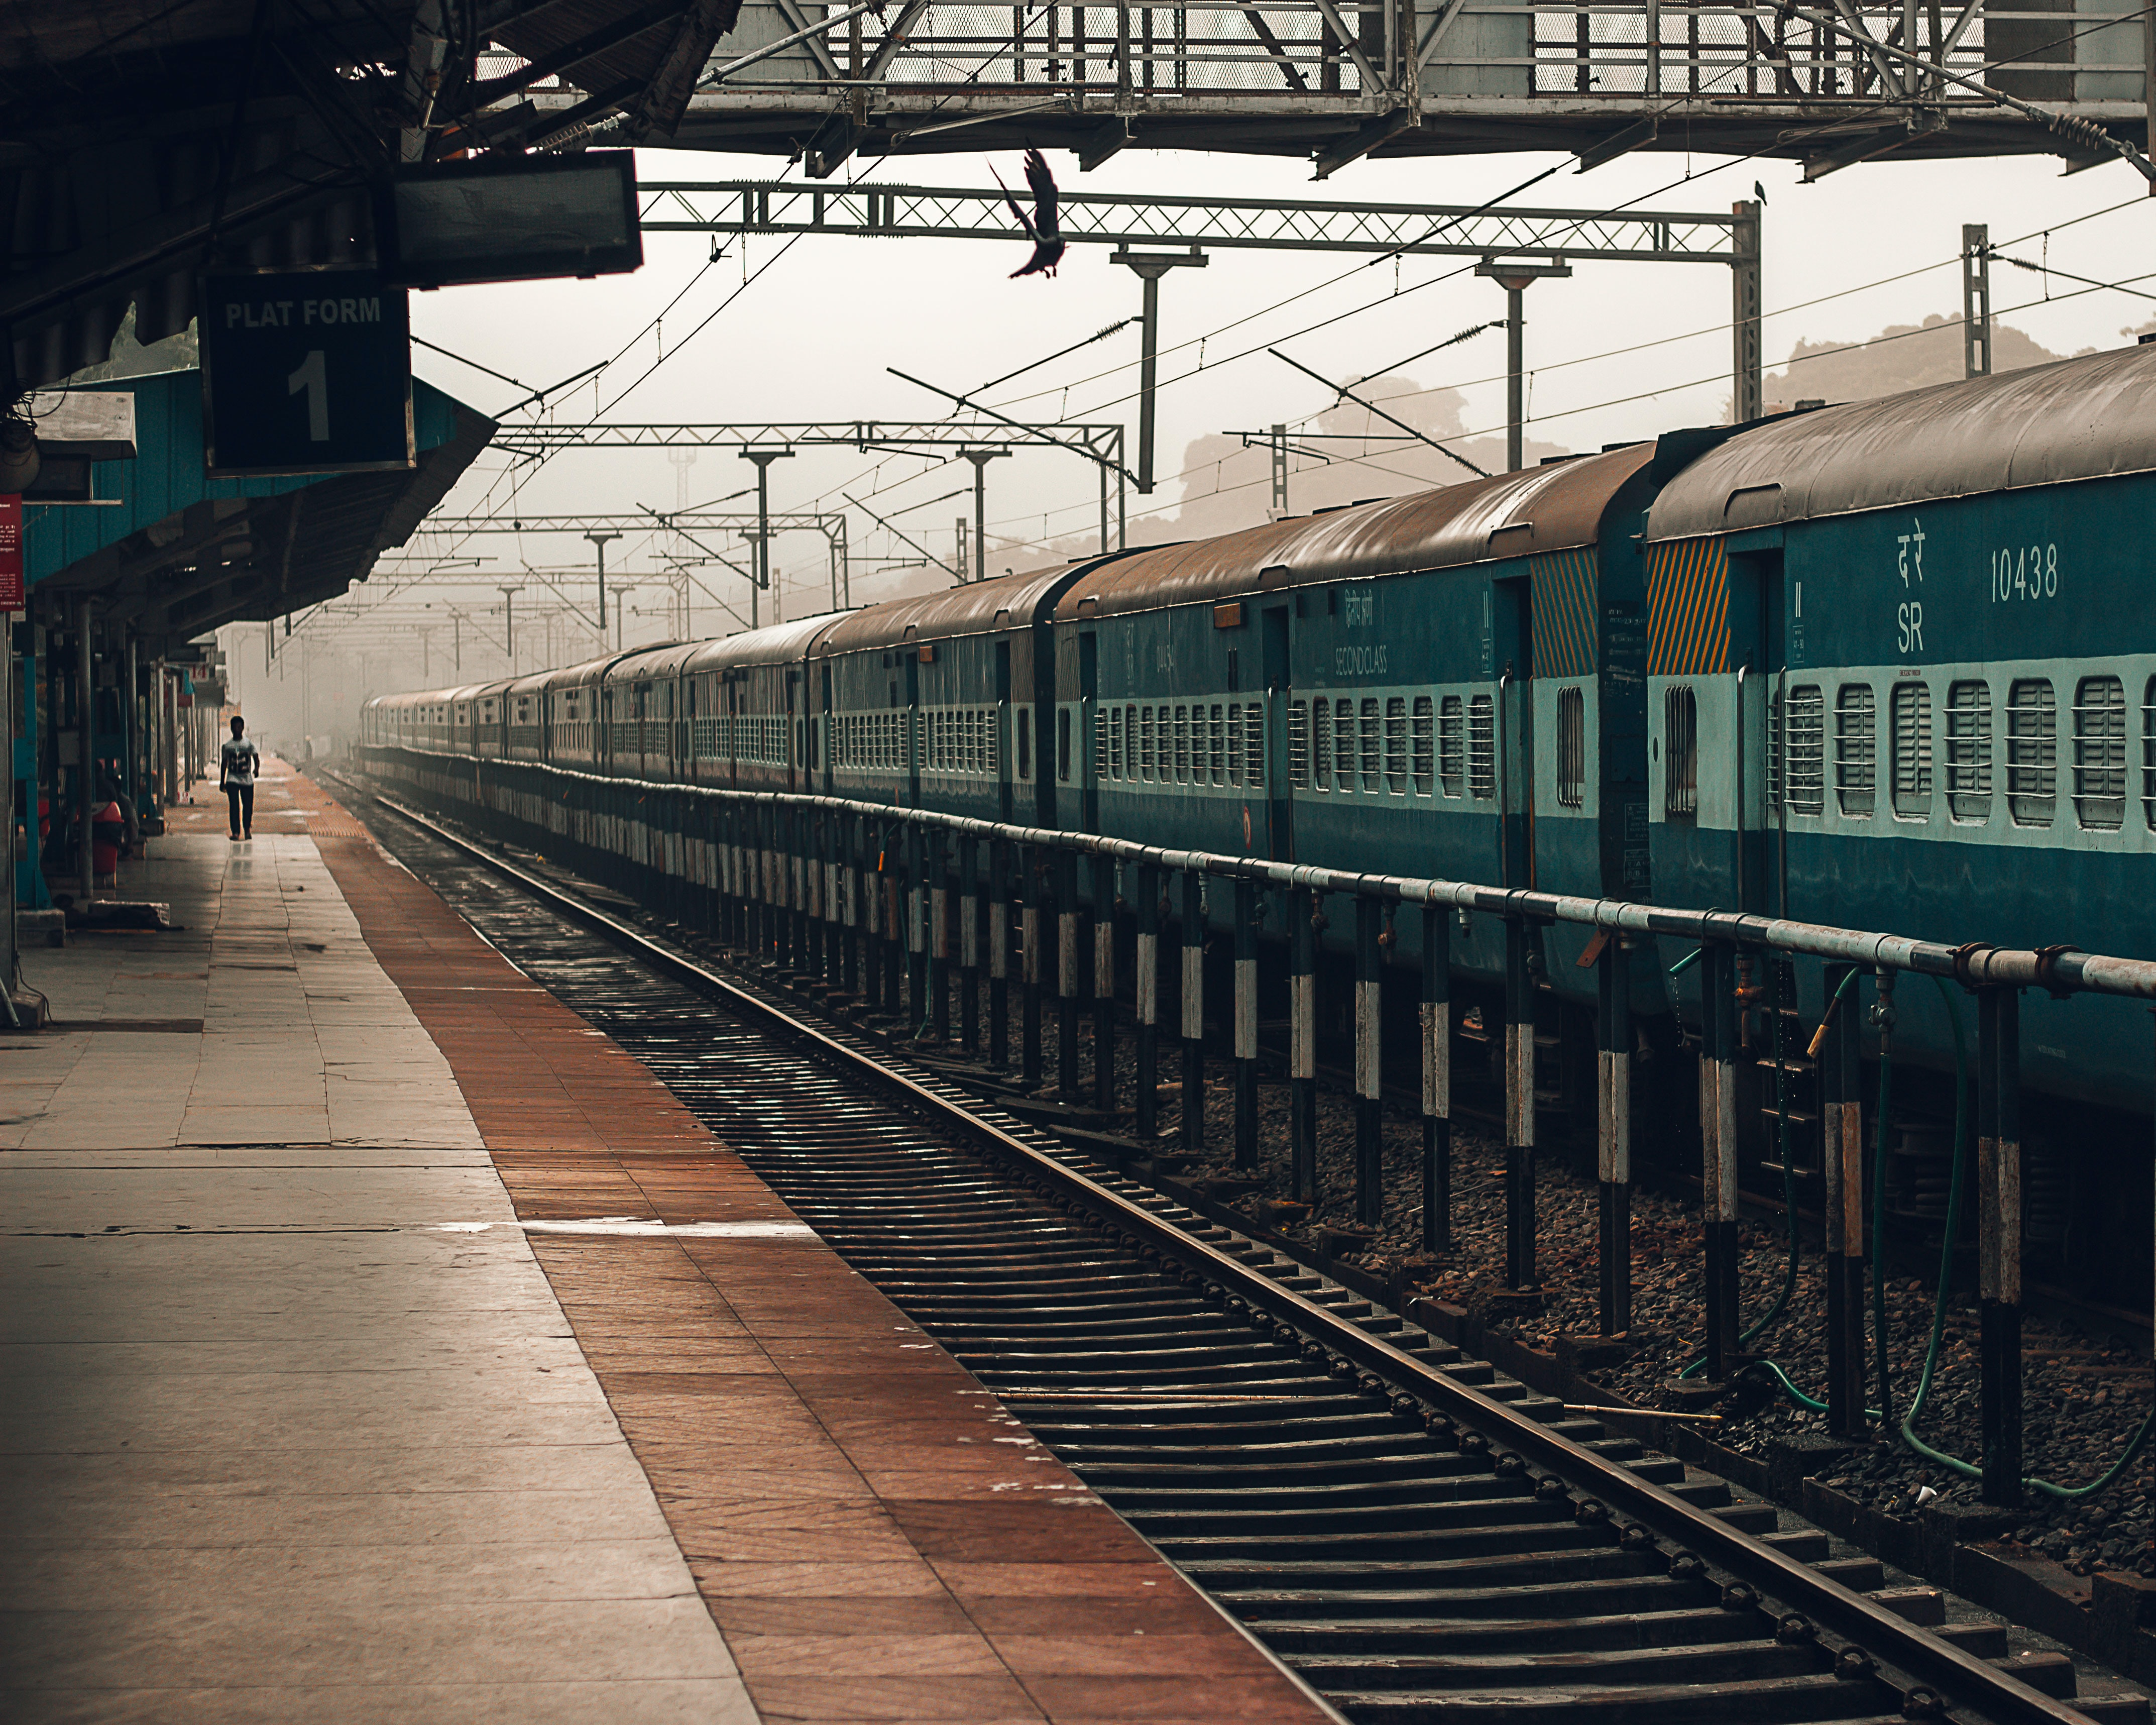 green train on station during daytime